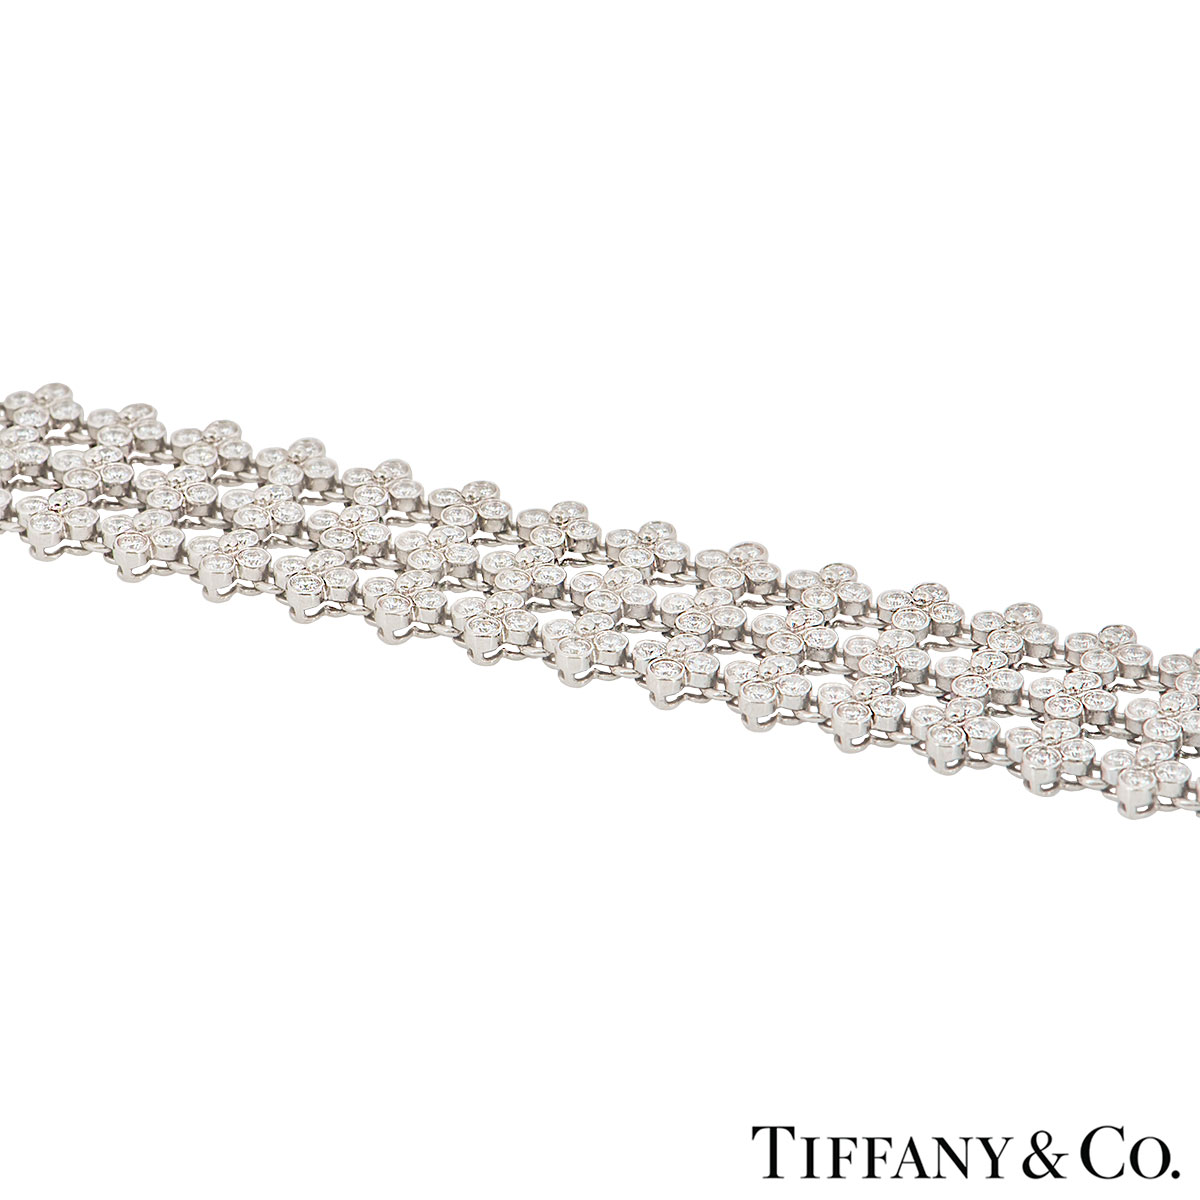 Tiffany & Co. Platinum Diamond Lace Bracelet